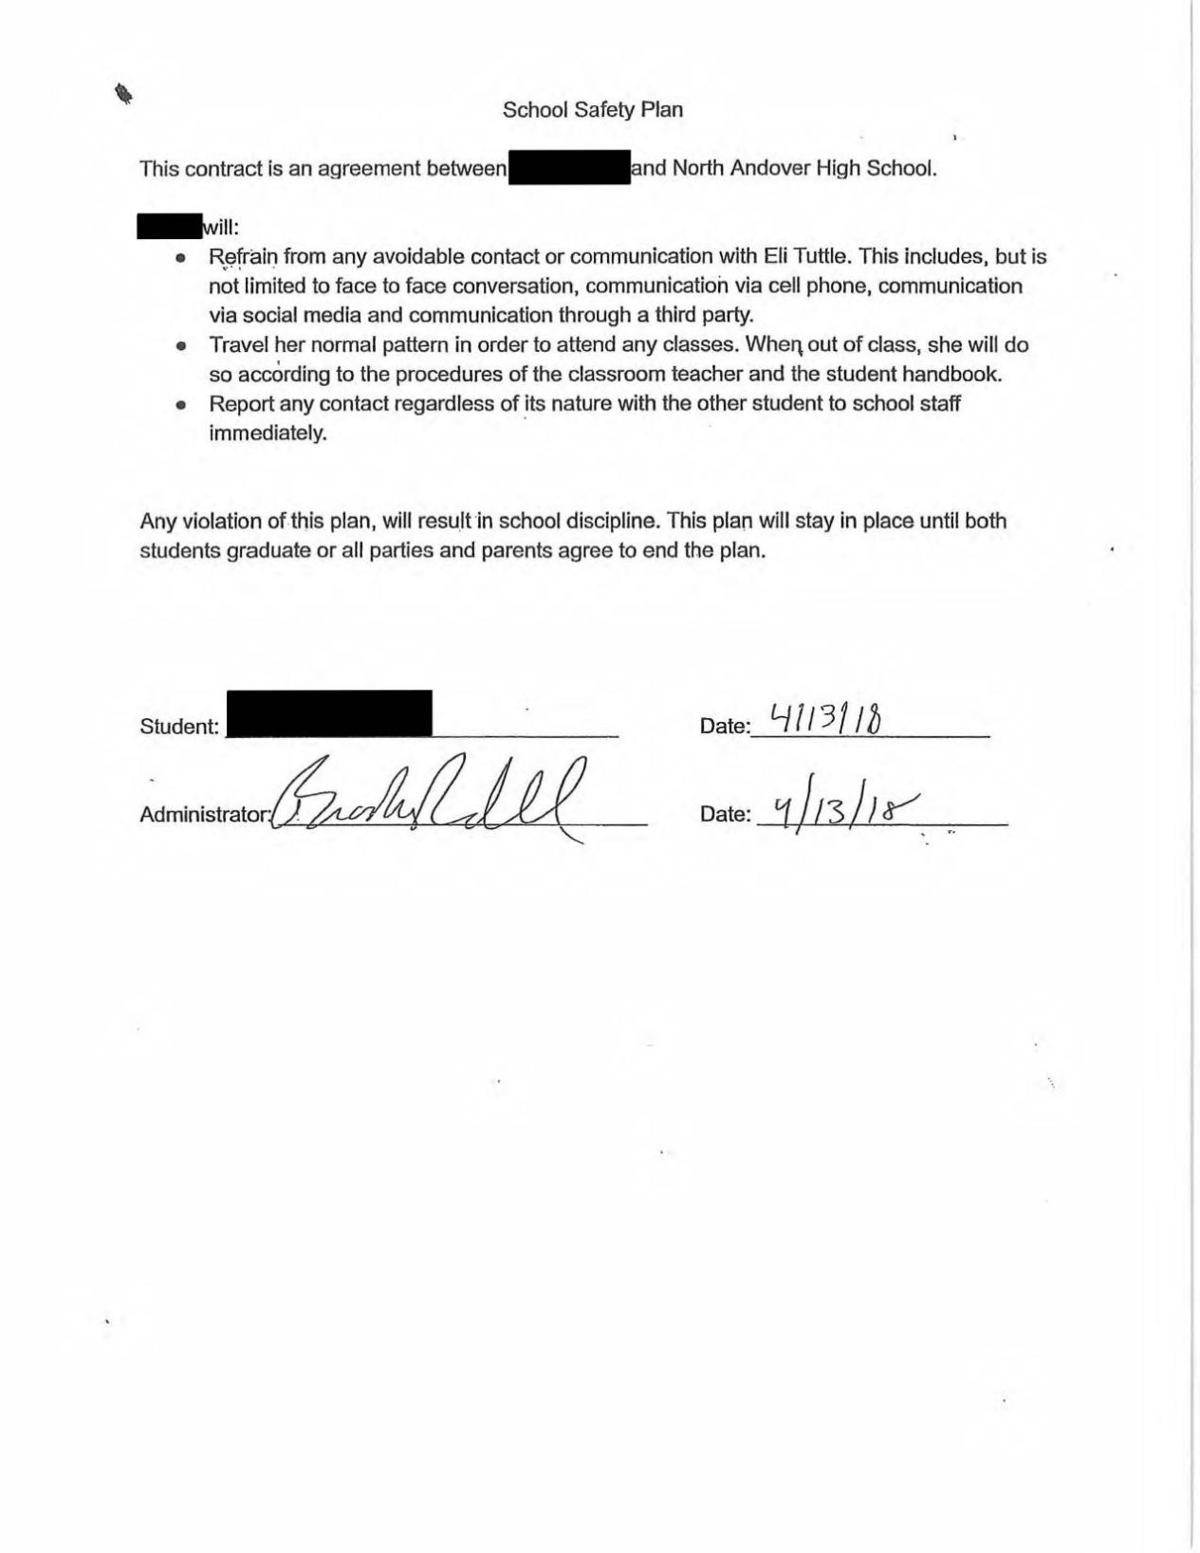 Redacted North Andover School Safety plan document